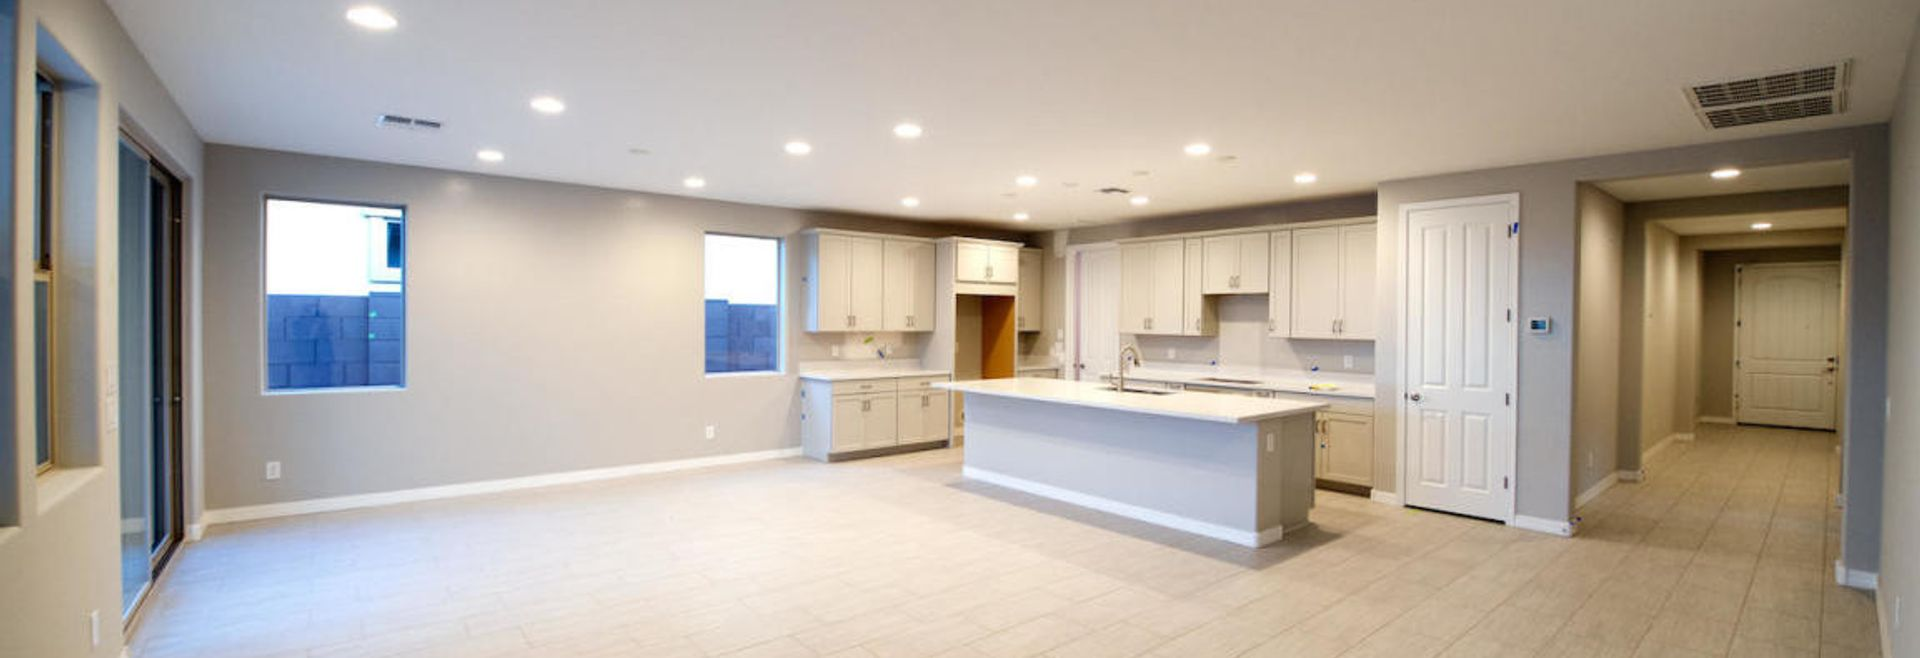 Inside of Gateway Quarter Aperture Plan 4013 Kitchen and Great Room